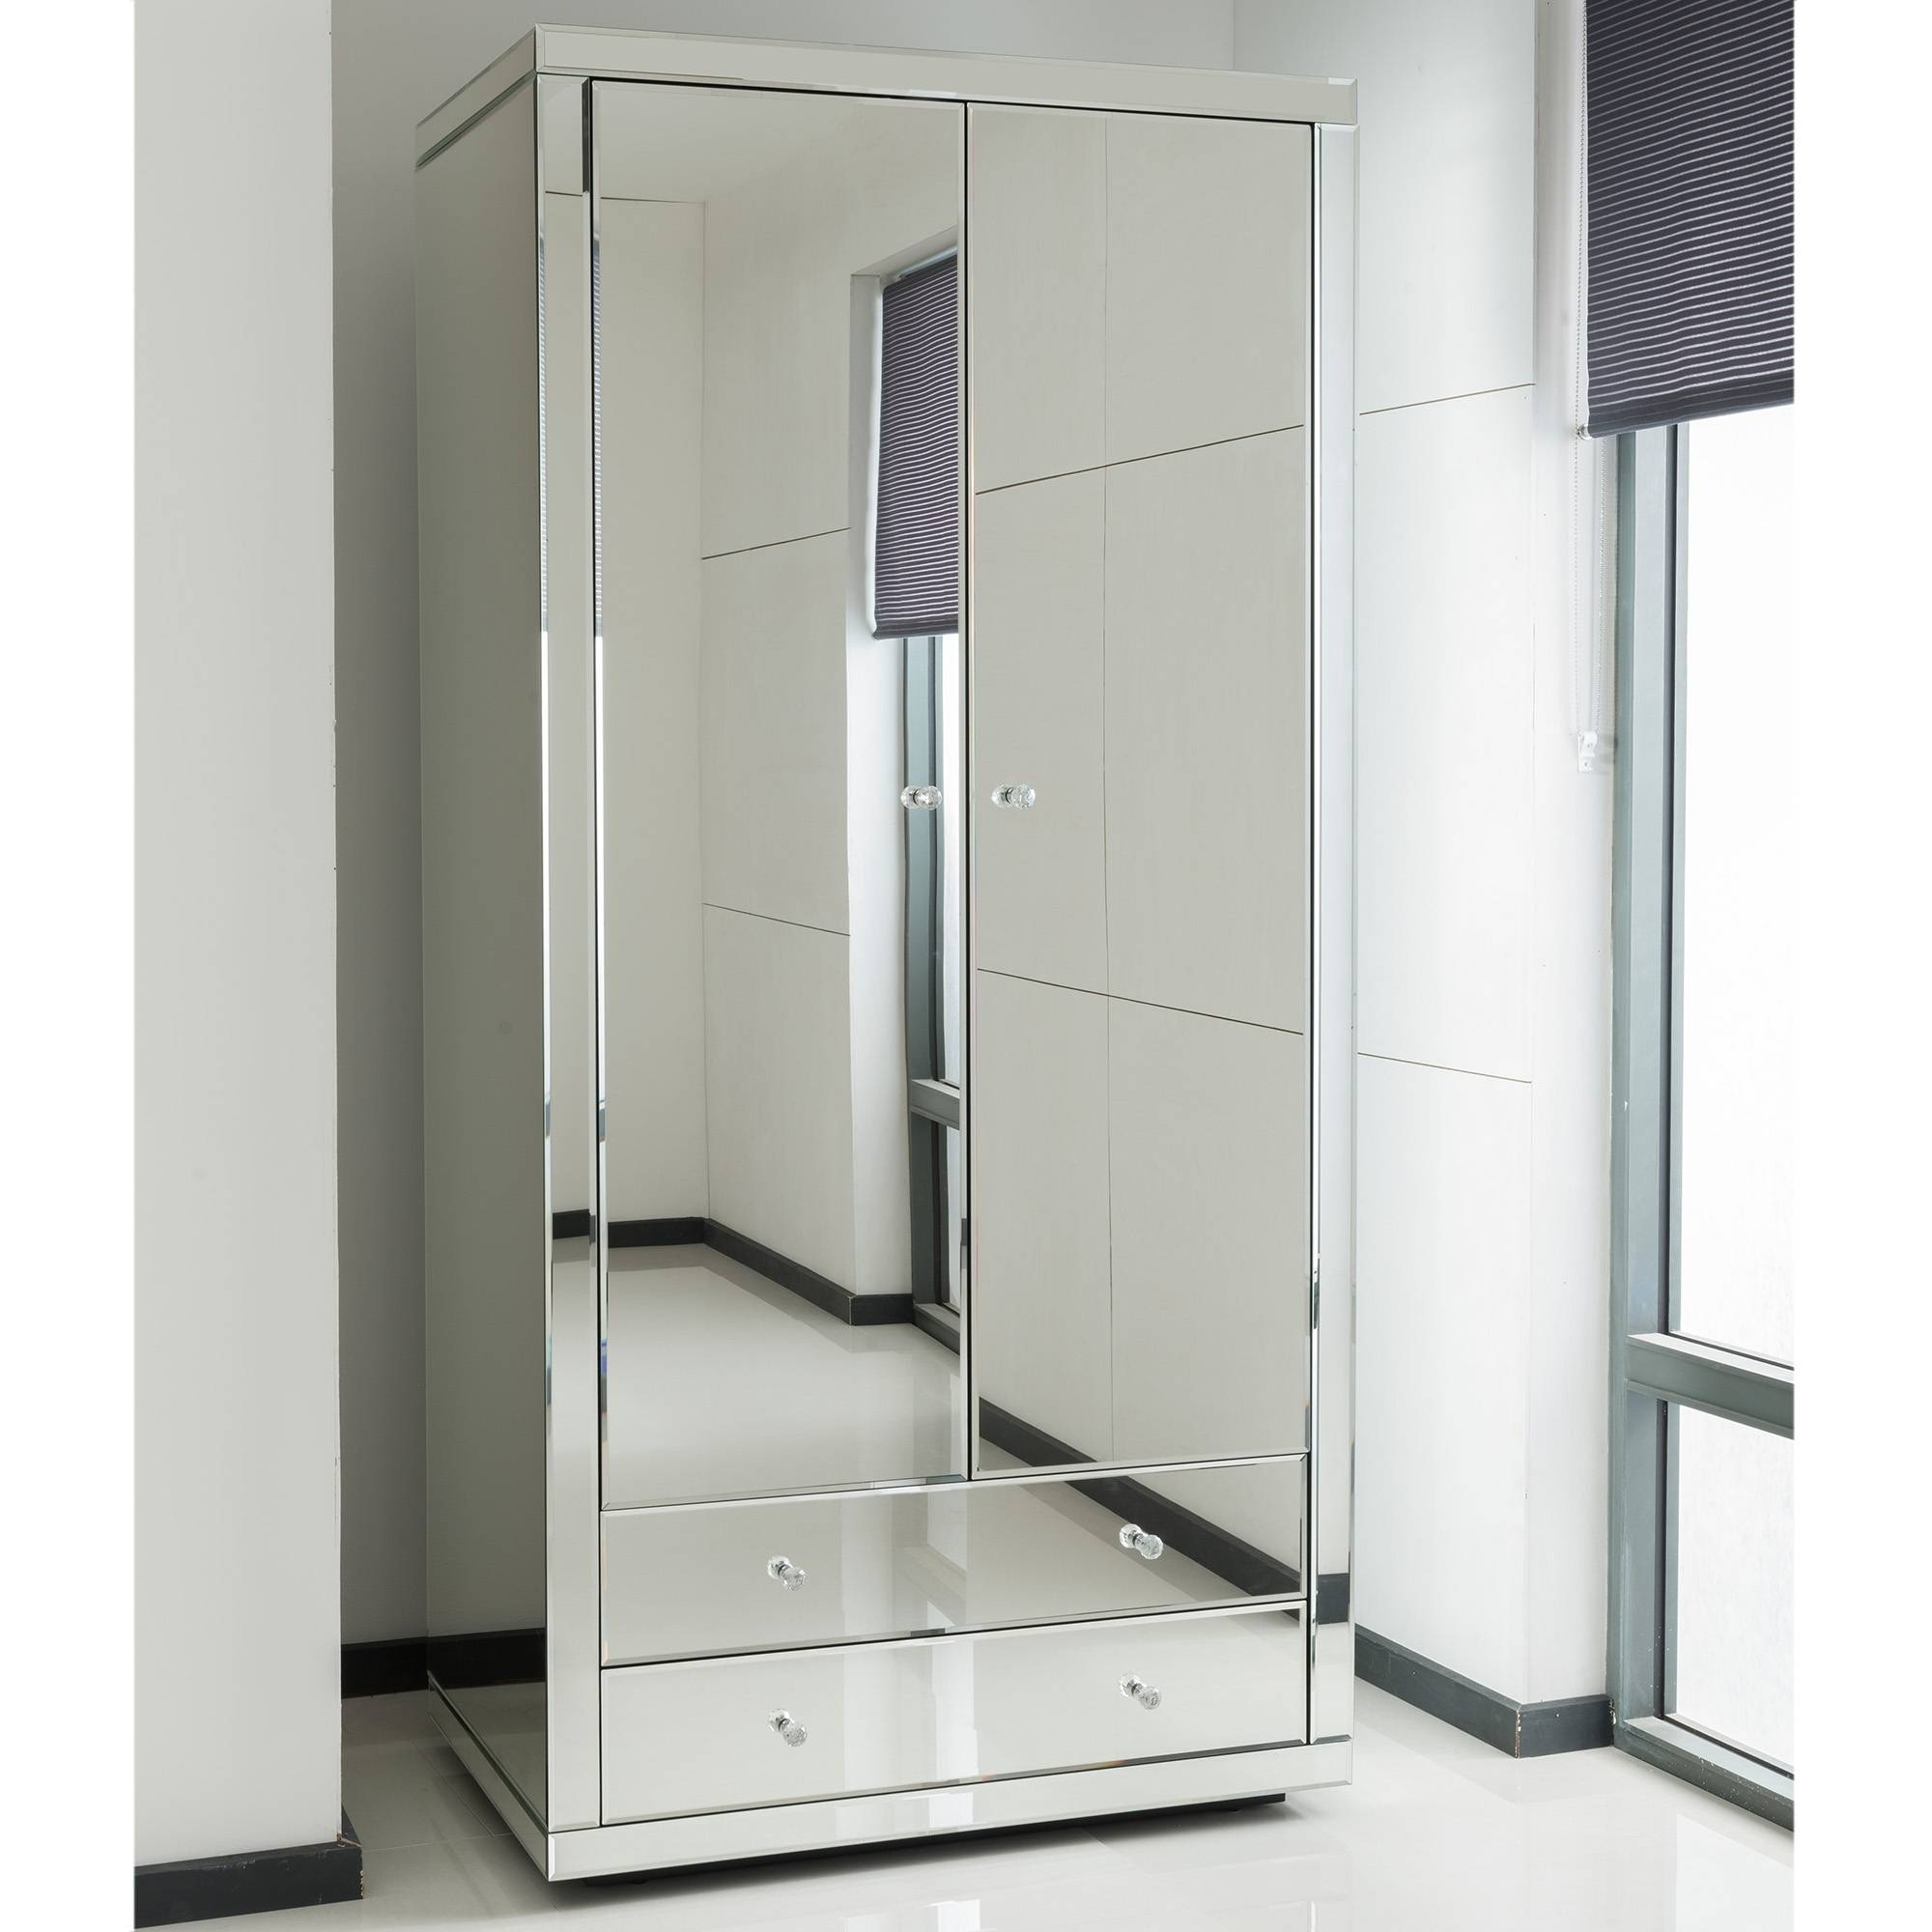 Mirrored Wardrobe Sliding Doors - Mirrored Wardrobe Designs For with Full Mirrored Wardrobes (Image 8 of 15)